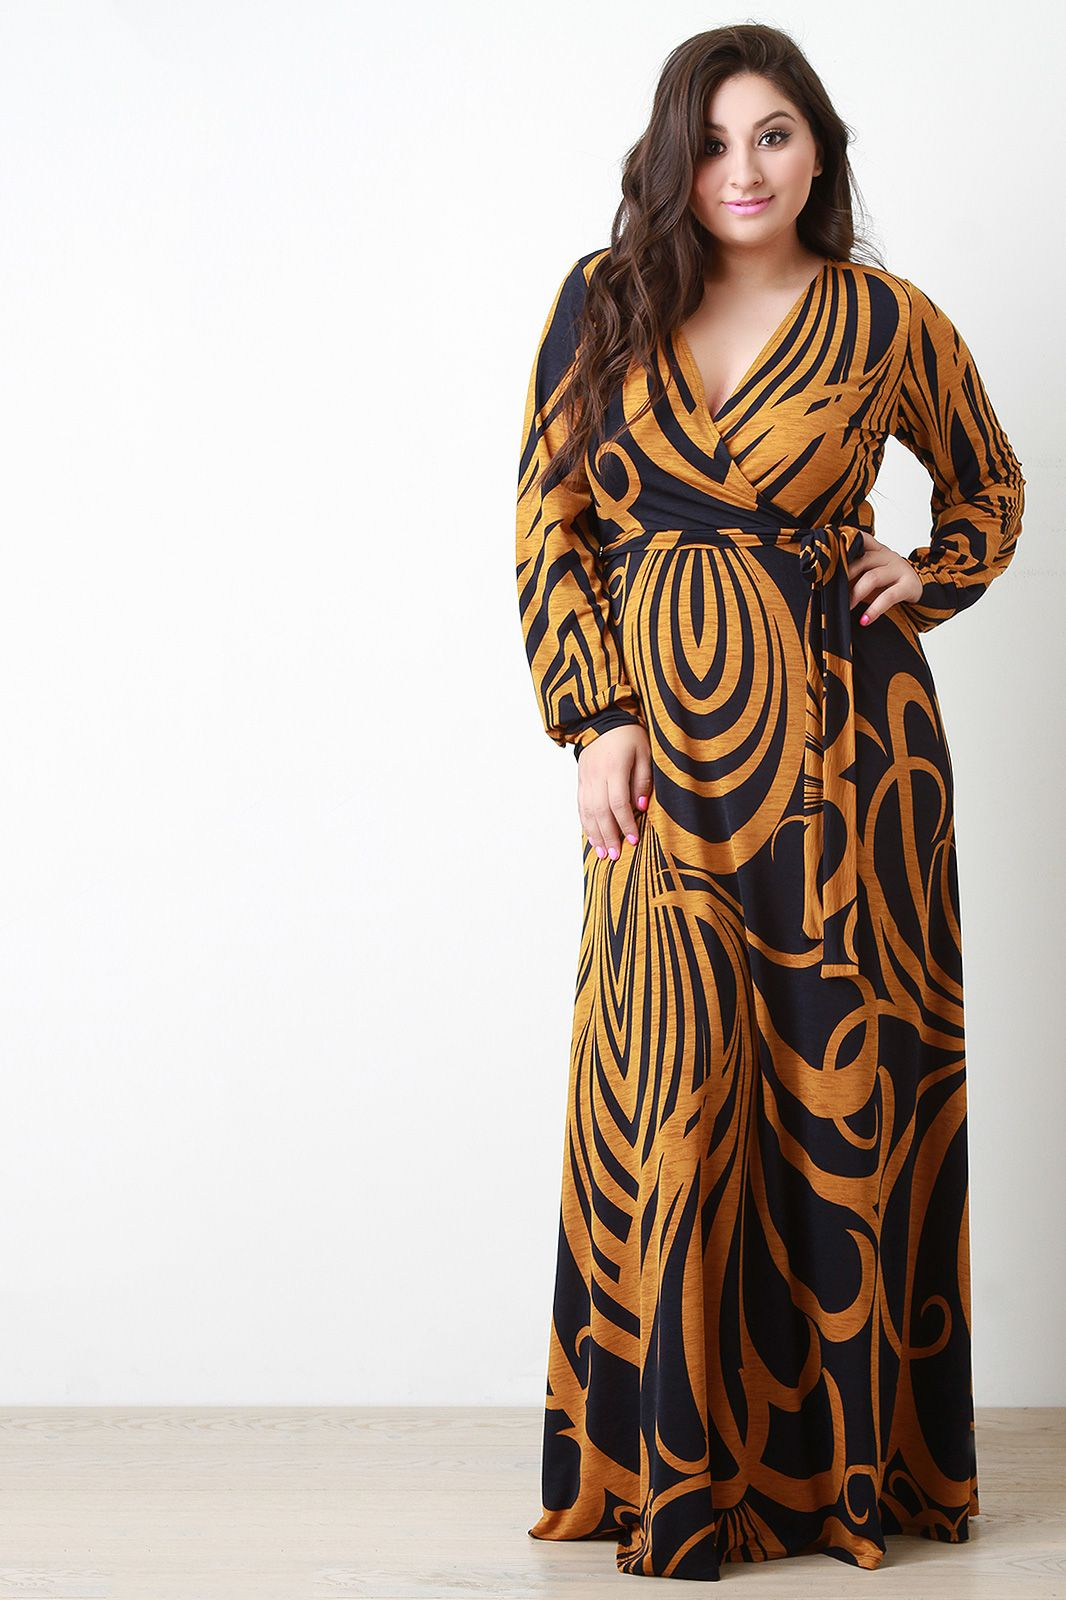 Abstract curve lines surplice longsleeve maxi dress source in